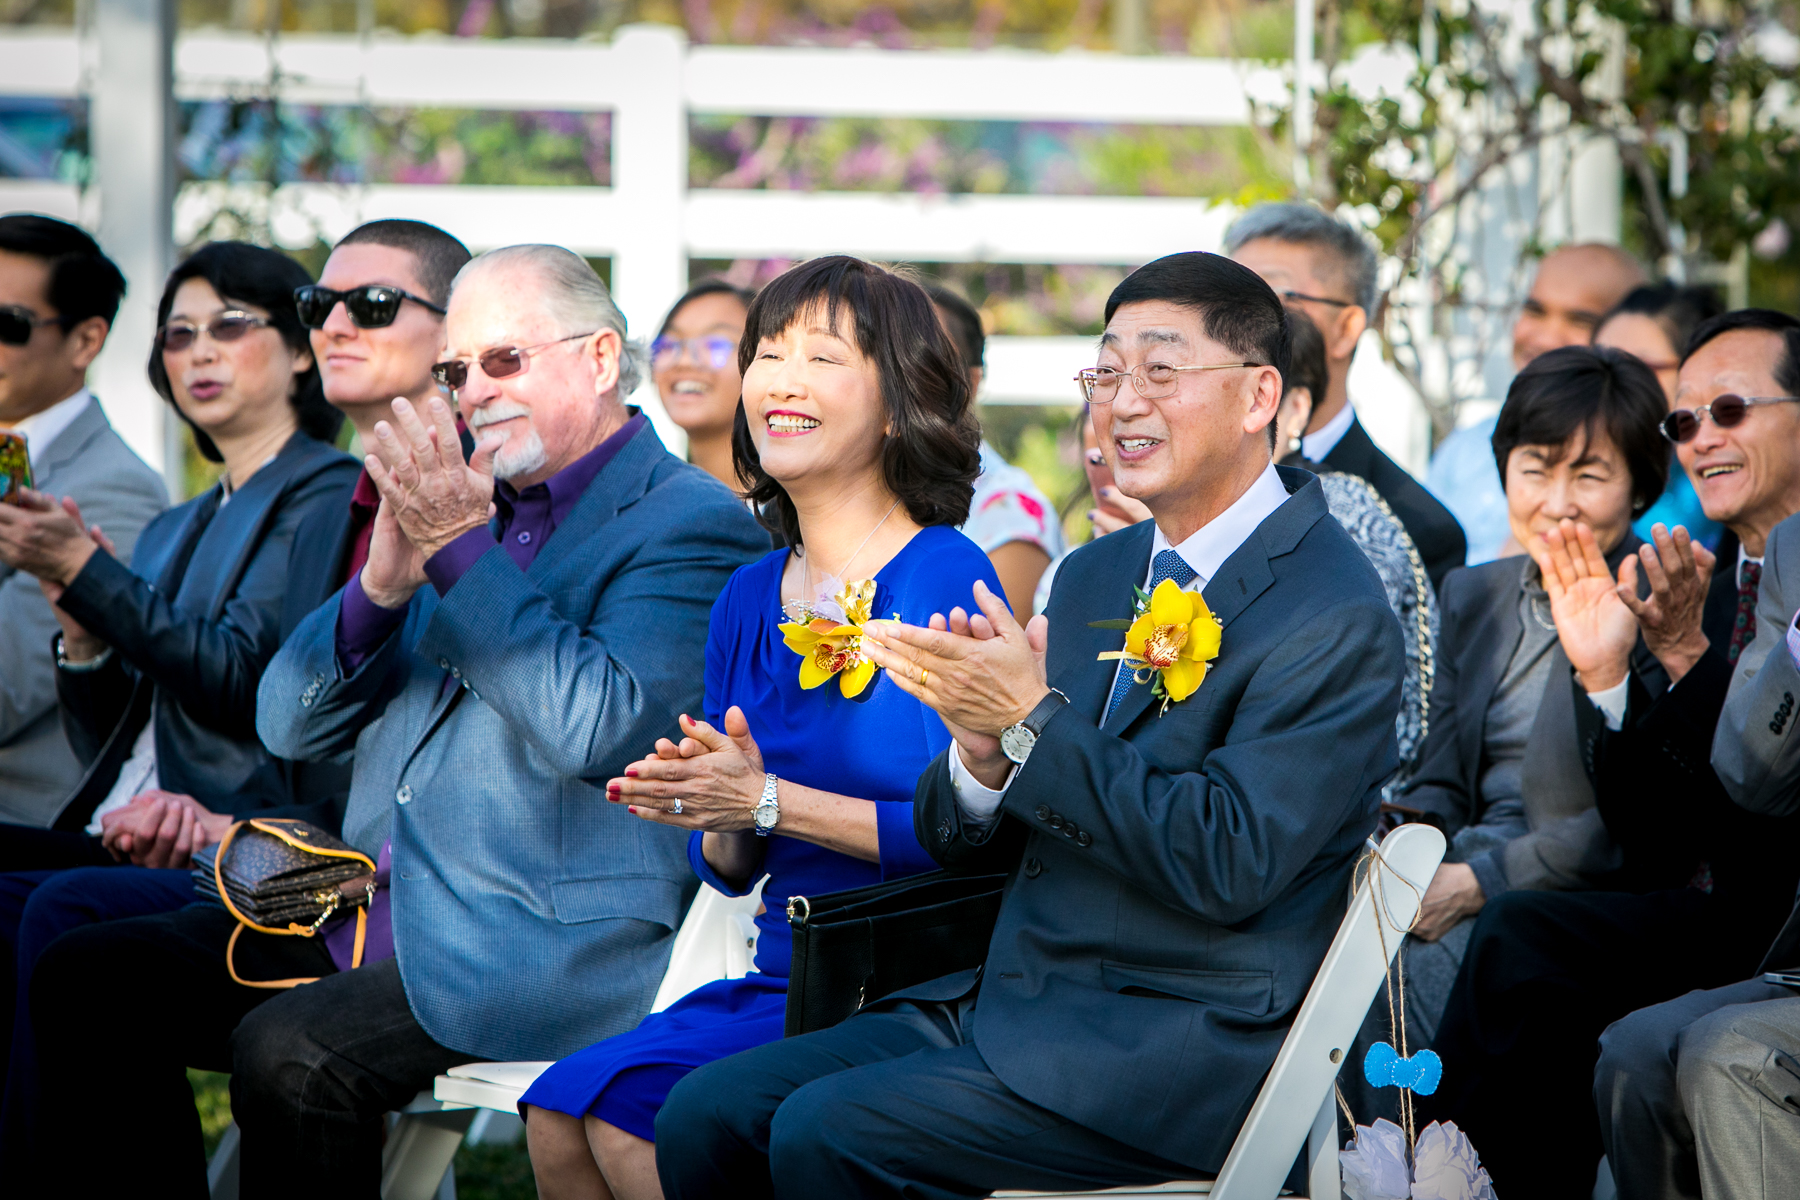 groom's parents clap during ceremony at chino hills wedding photos